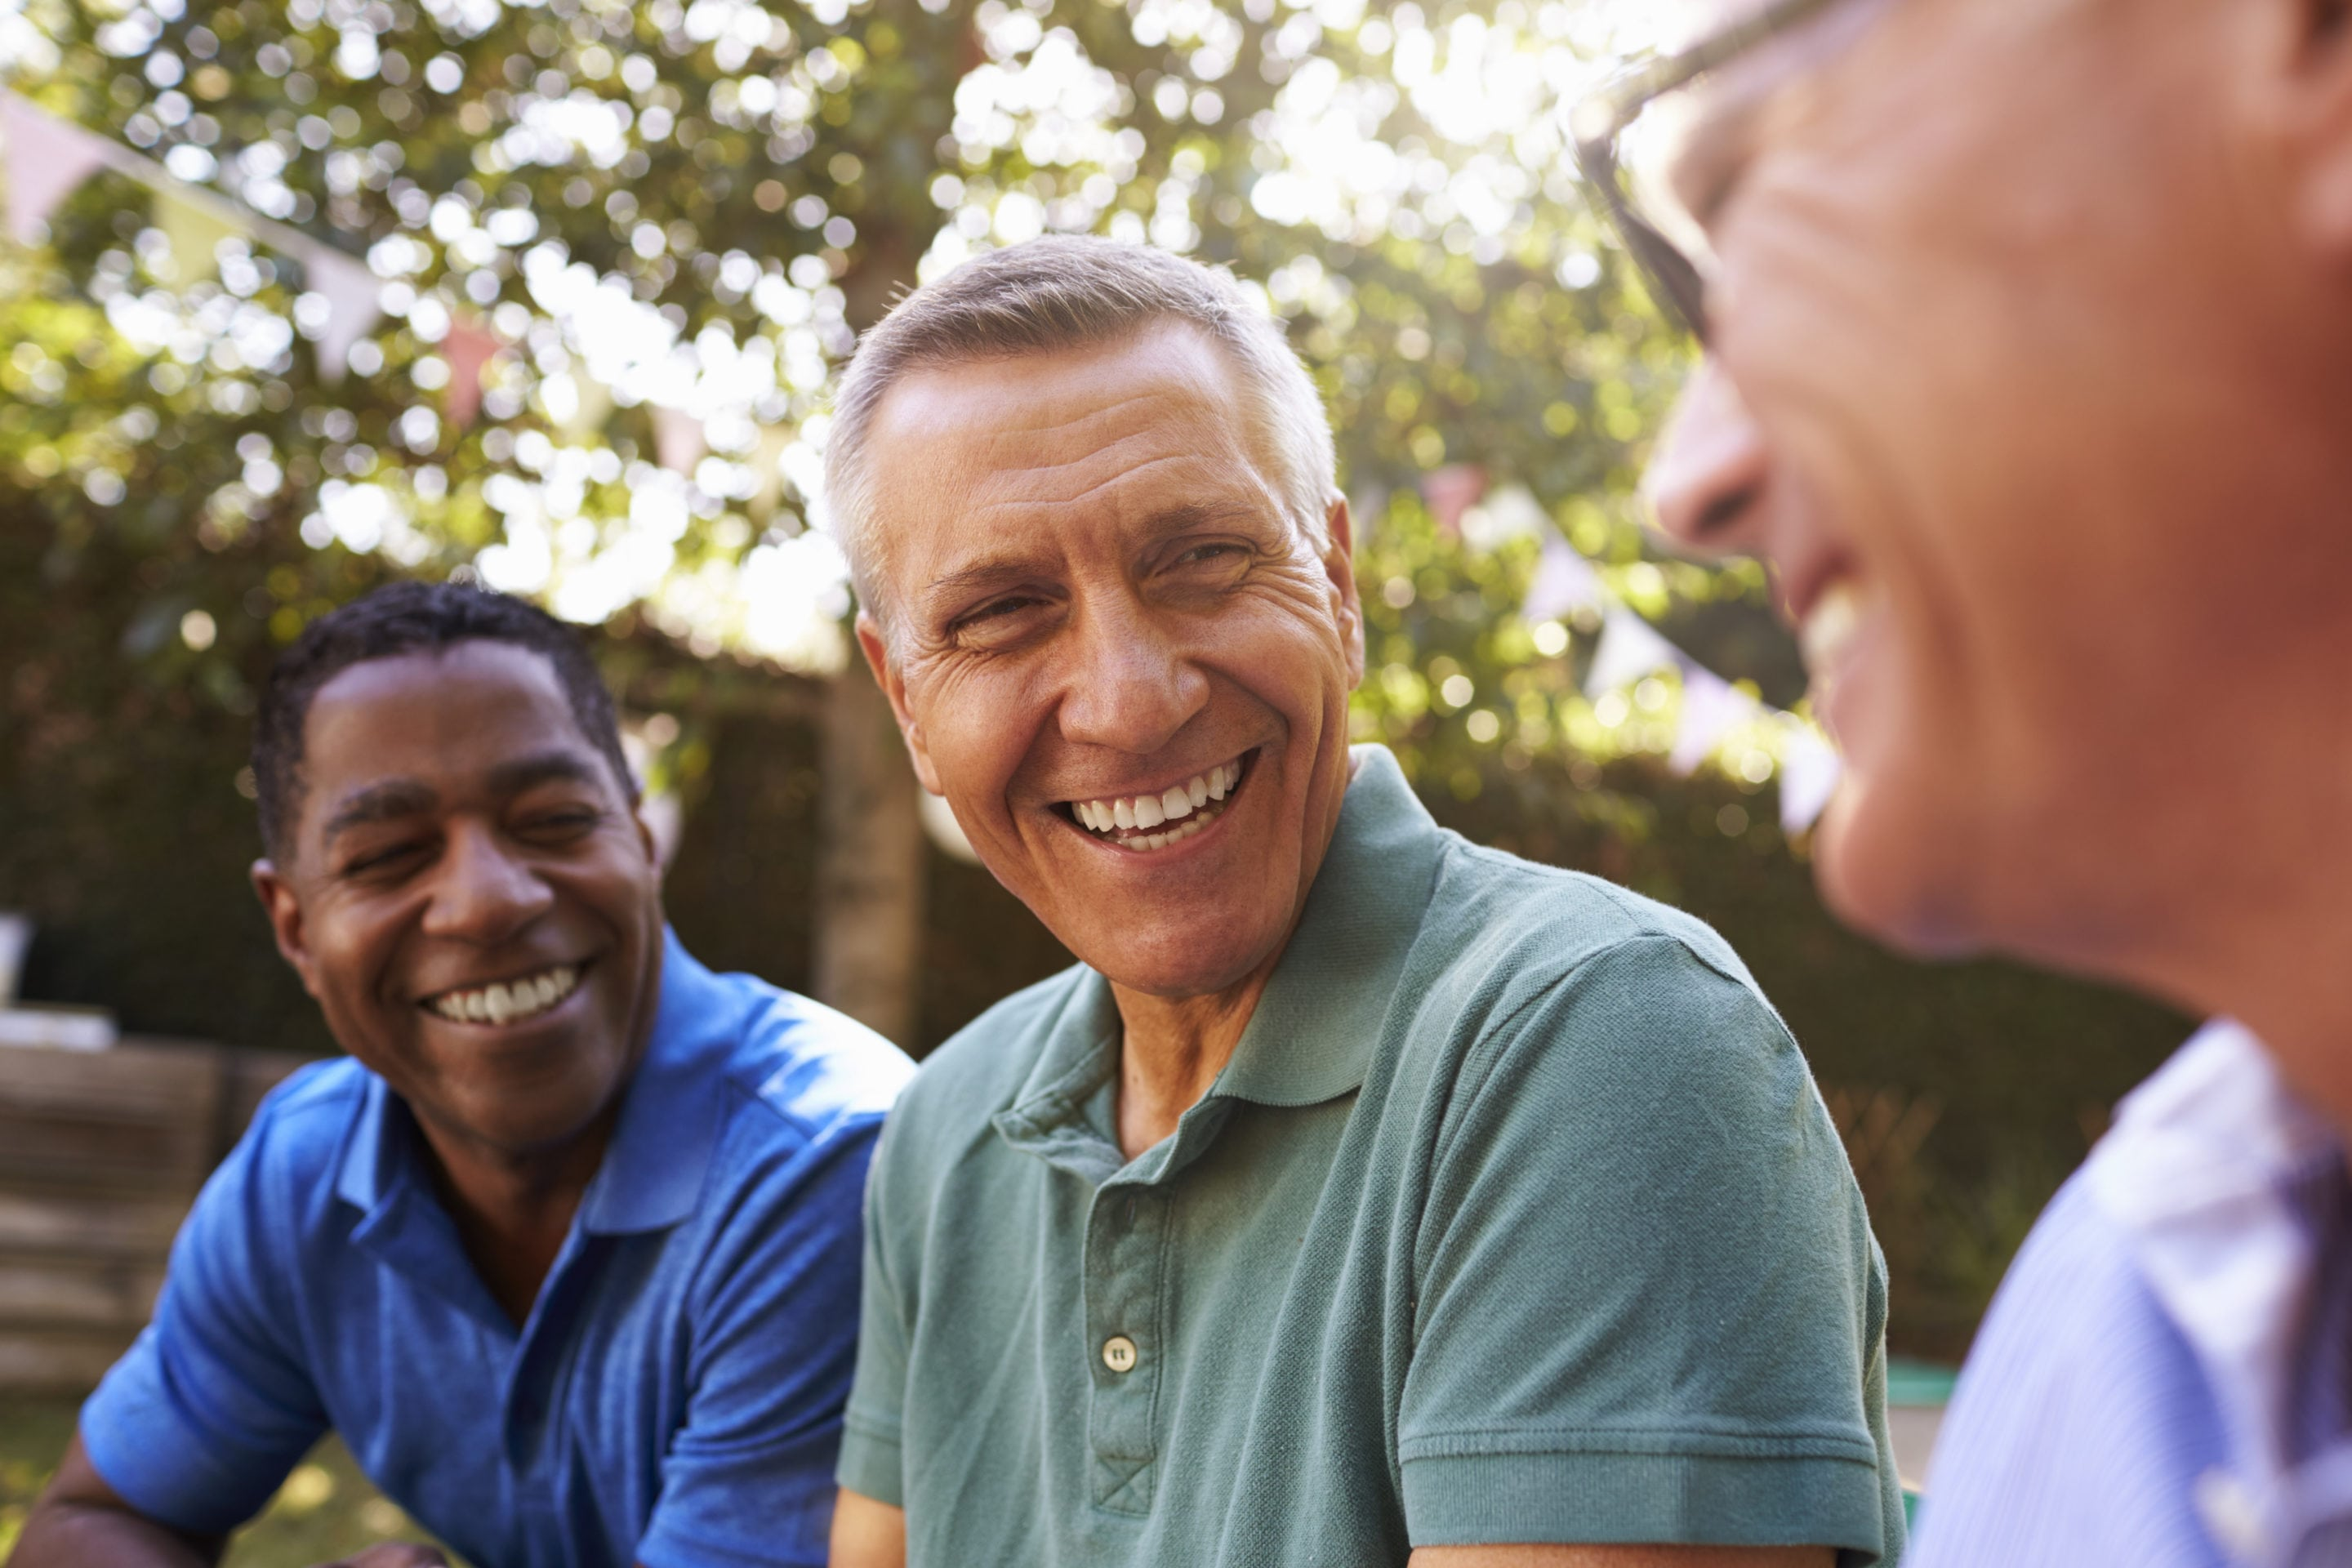 Mature Male Friends Socializing In Backyard Together | SLENT